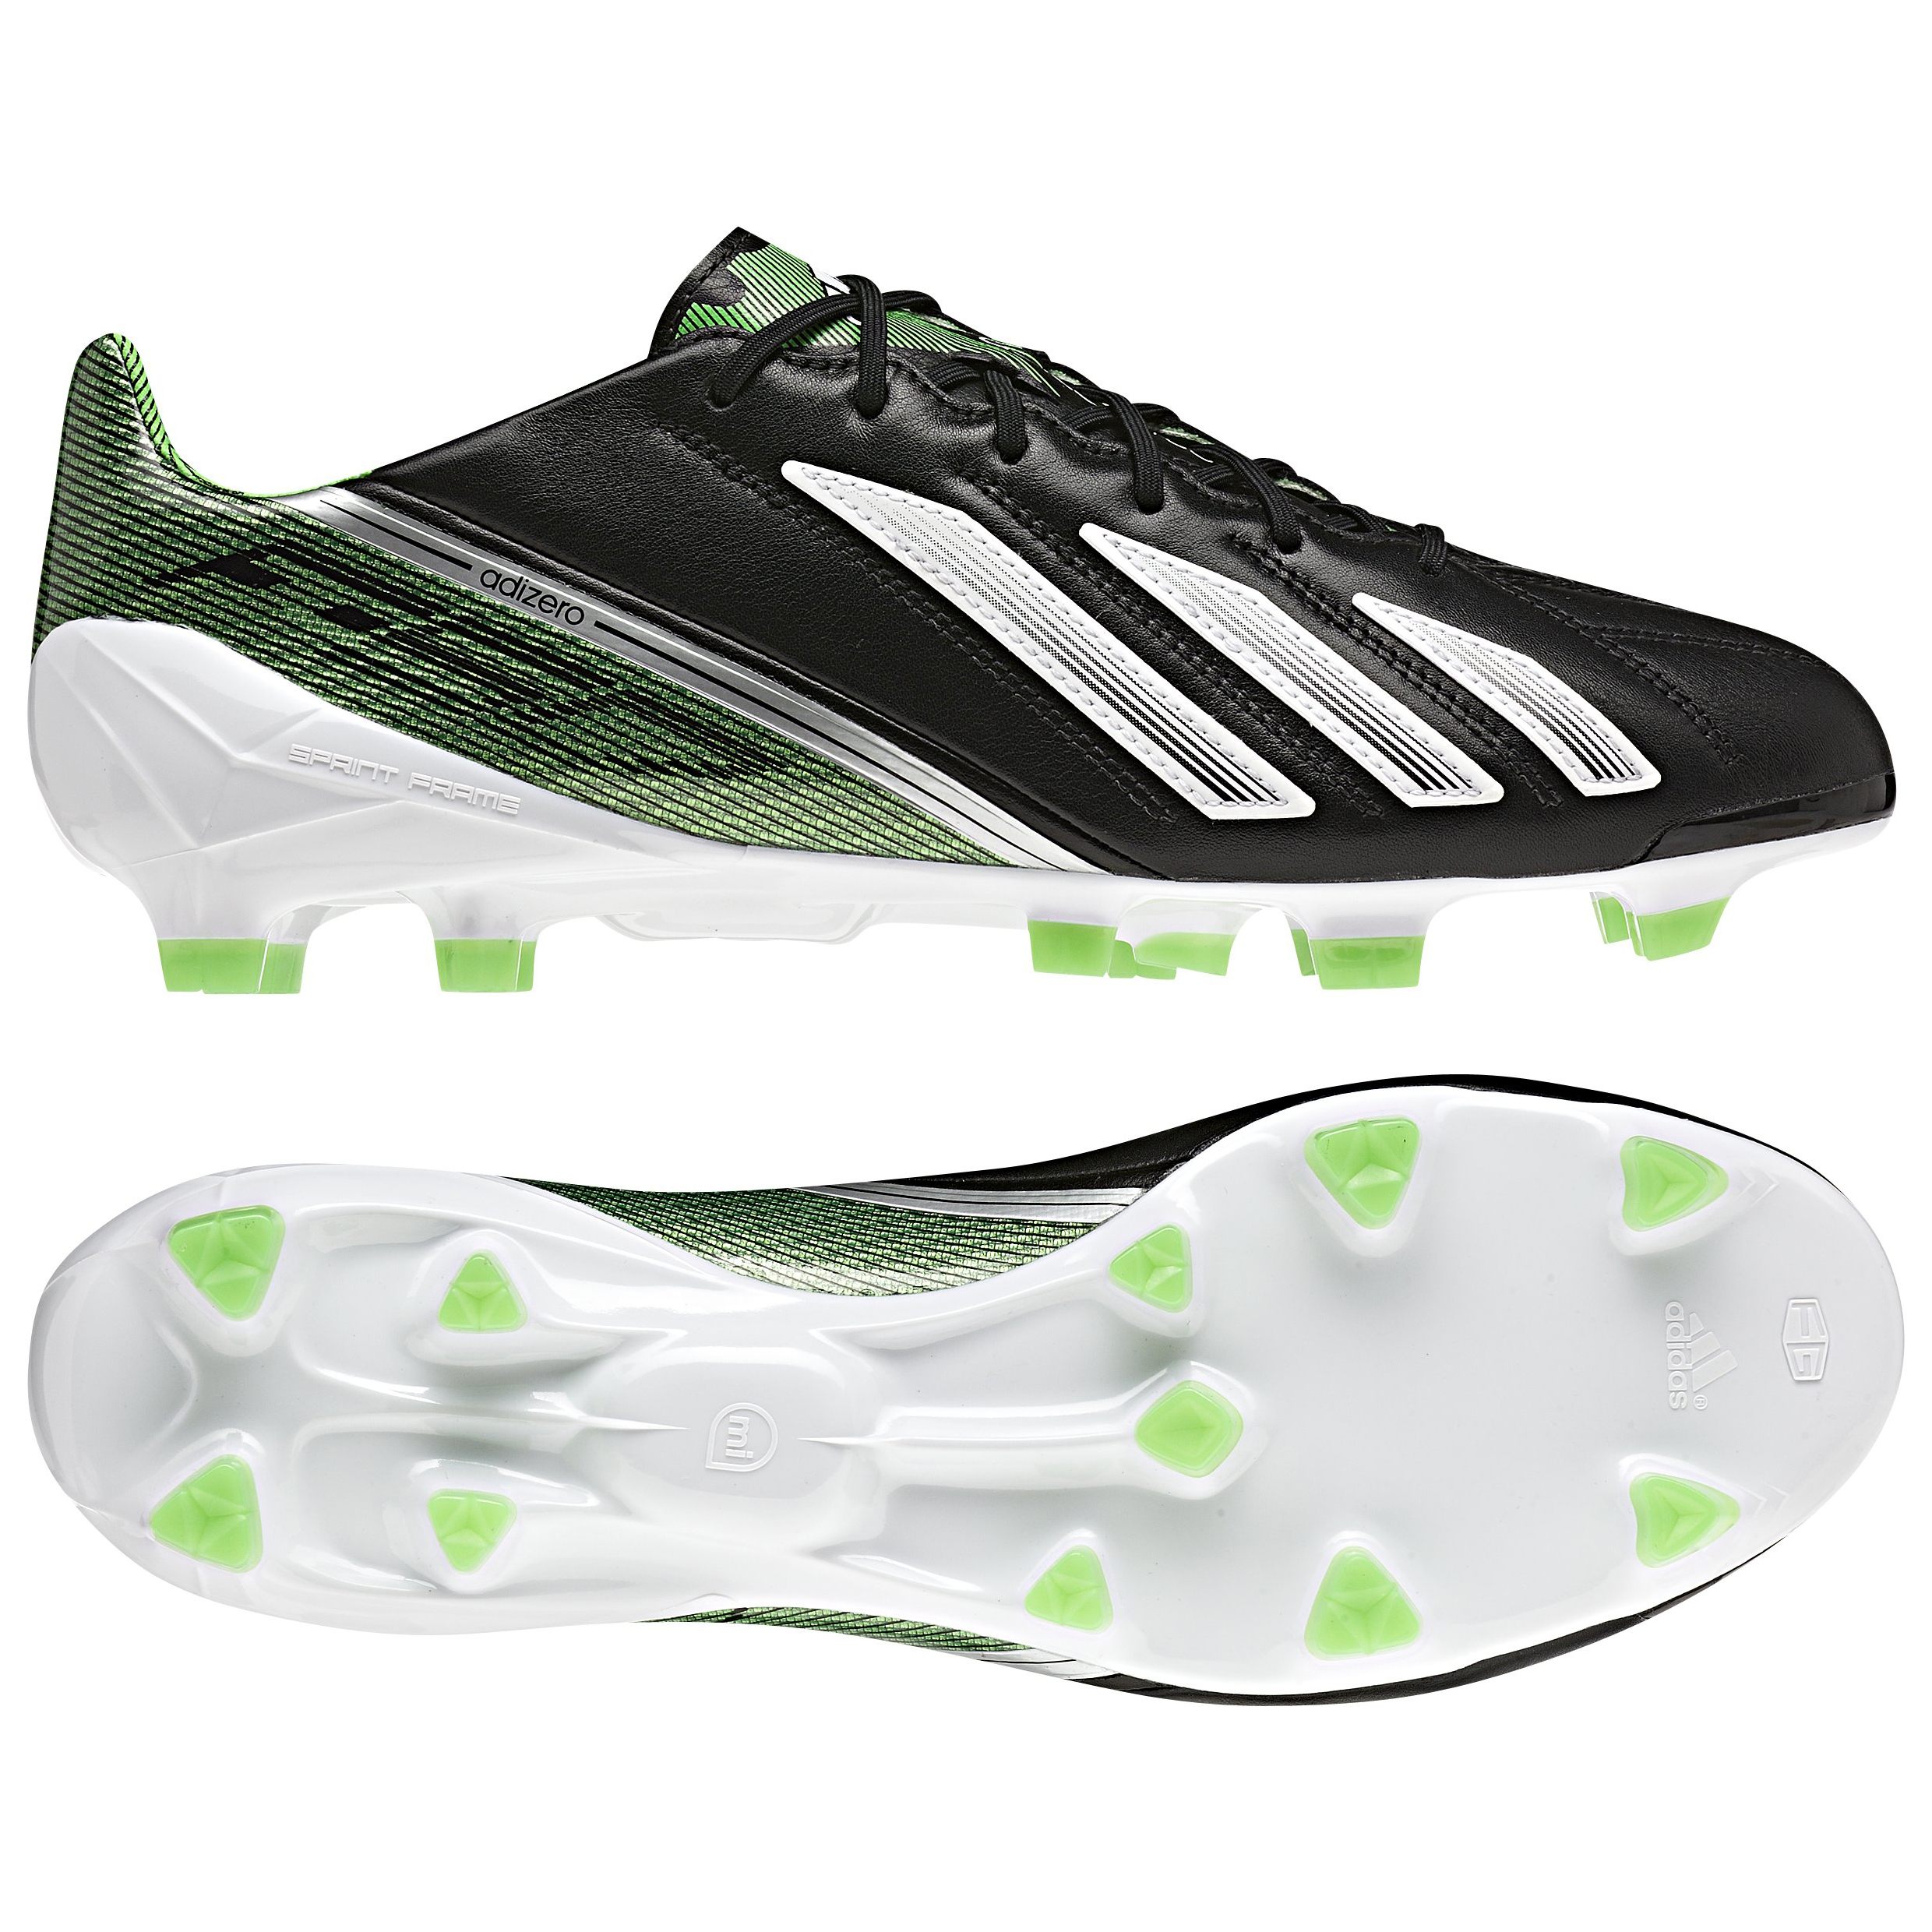 adidas AdiZero F50 TRX Firm Ground Leather Football Boots - Black/Running White/Green Zest